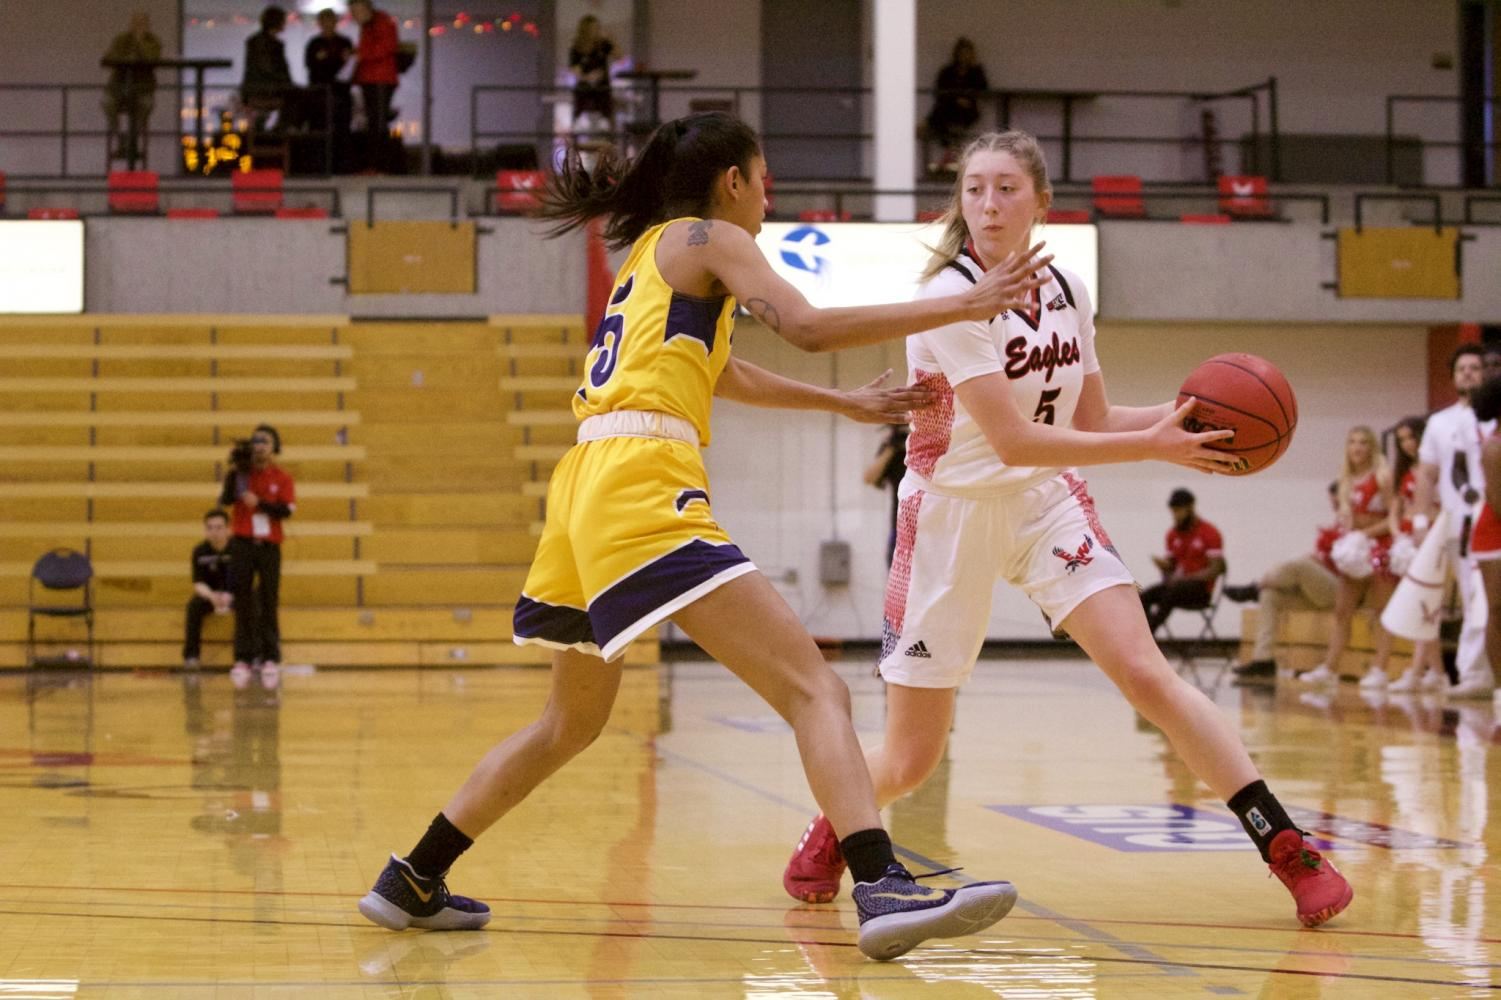 EWU freshman guard Jenna Dick looks to pass to the post. Dick got the start at point guard Sunday and responded by scoring a career-high 17 points.